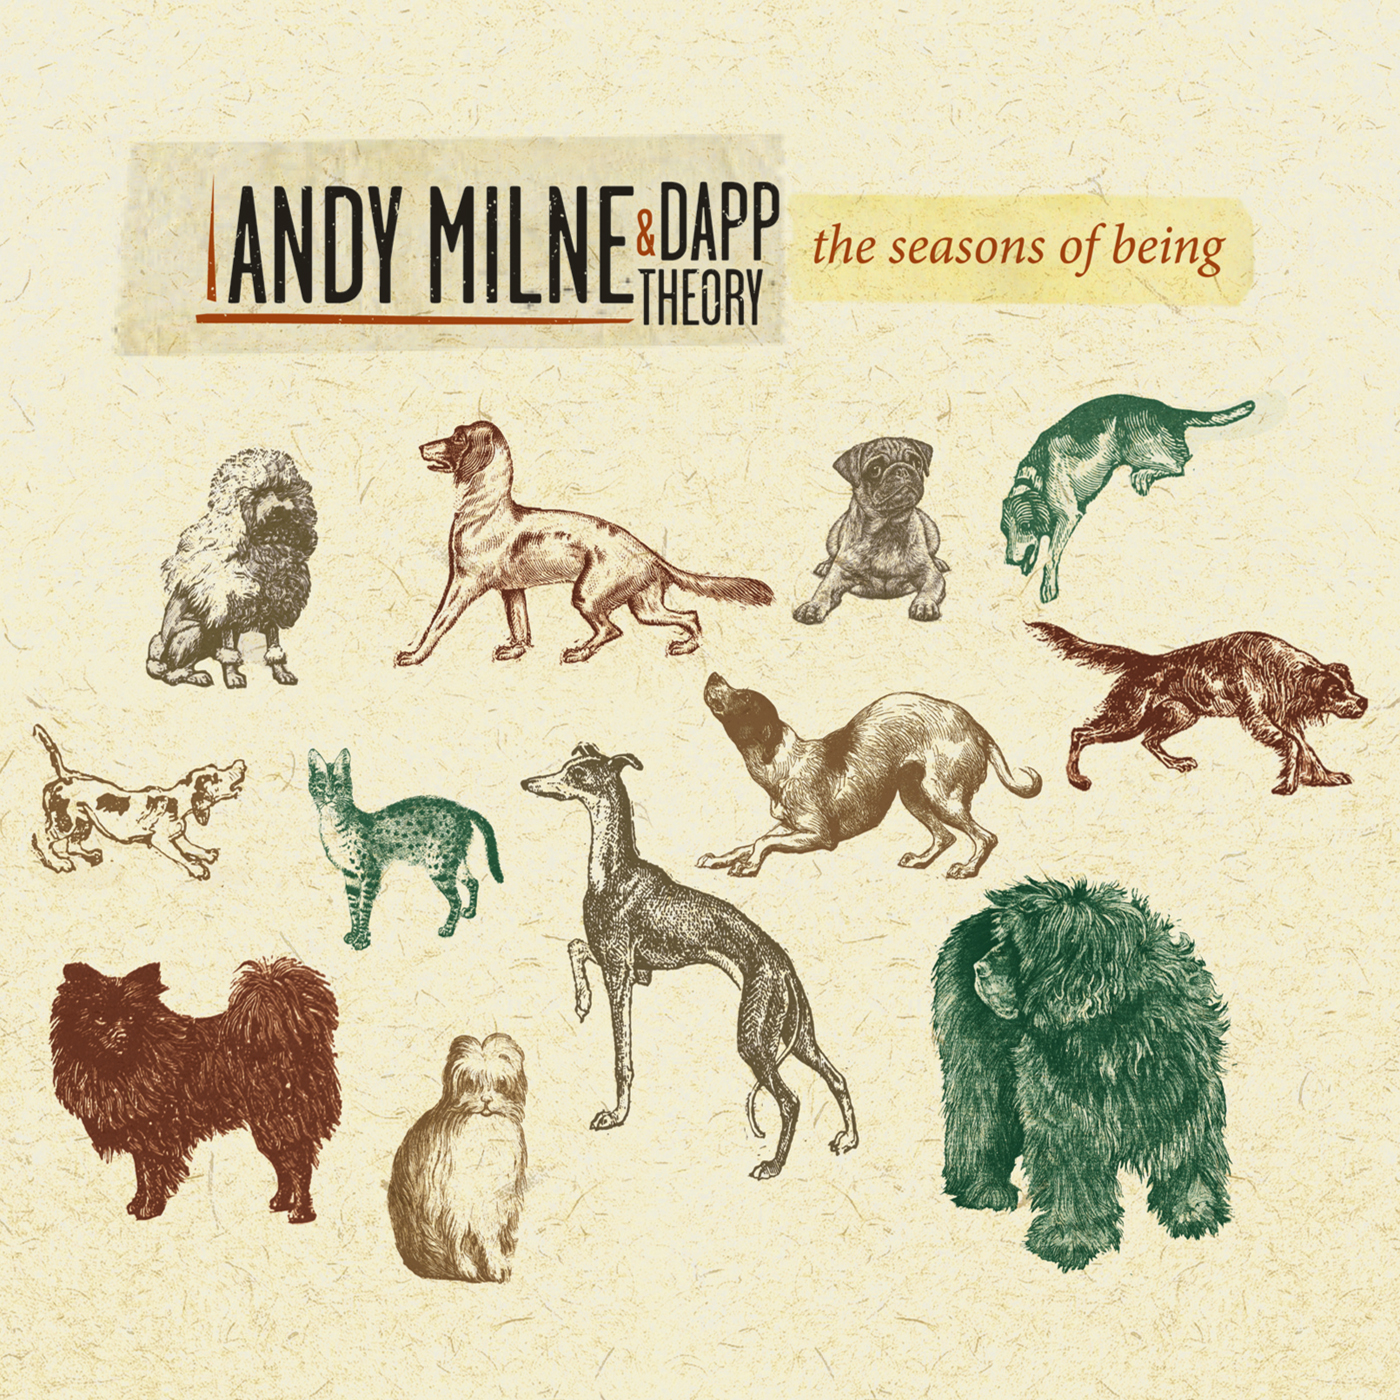 The Seasons of Being  by Andy  Milne & Dapp Theory cover